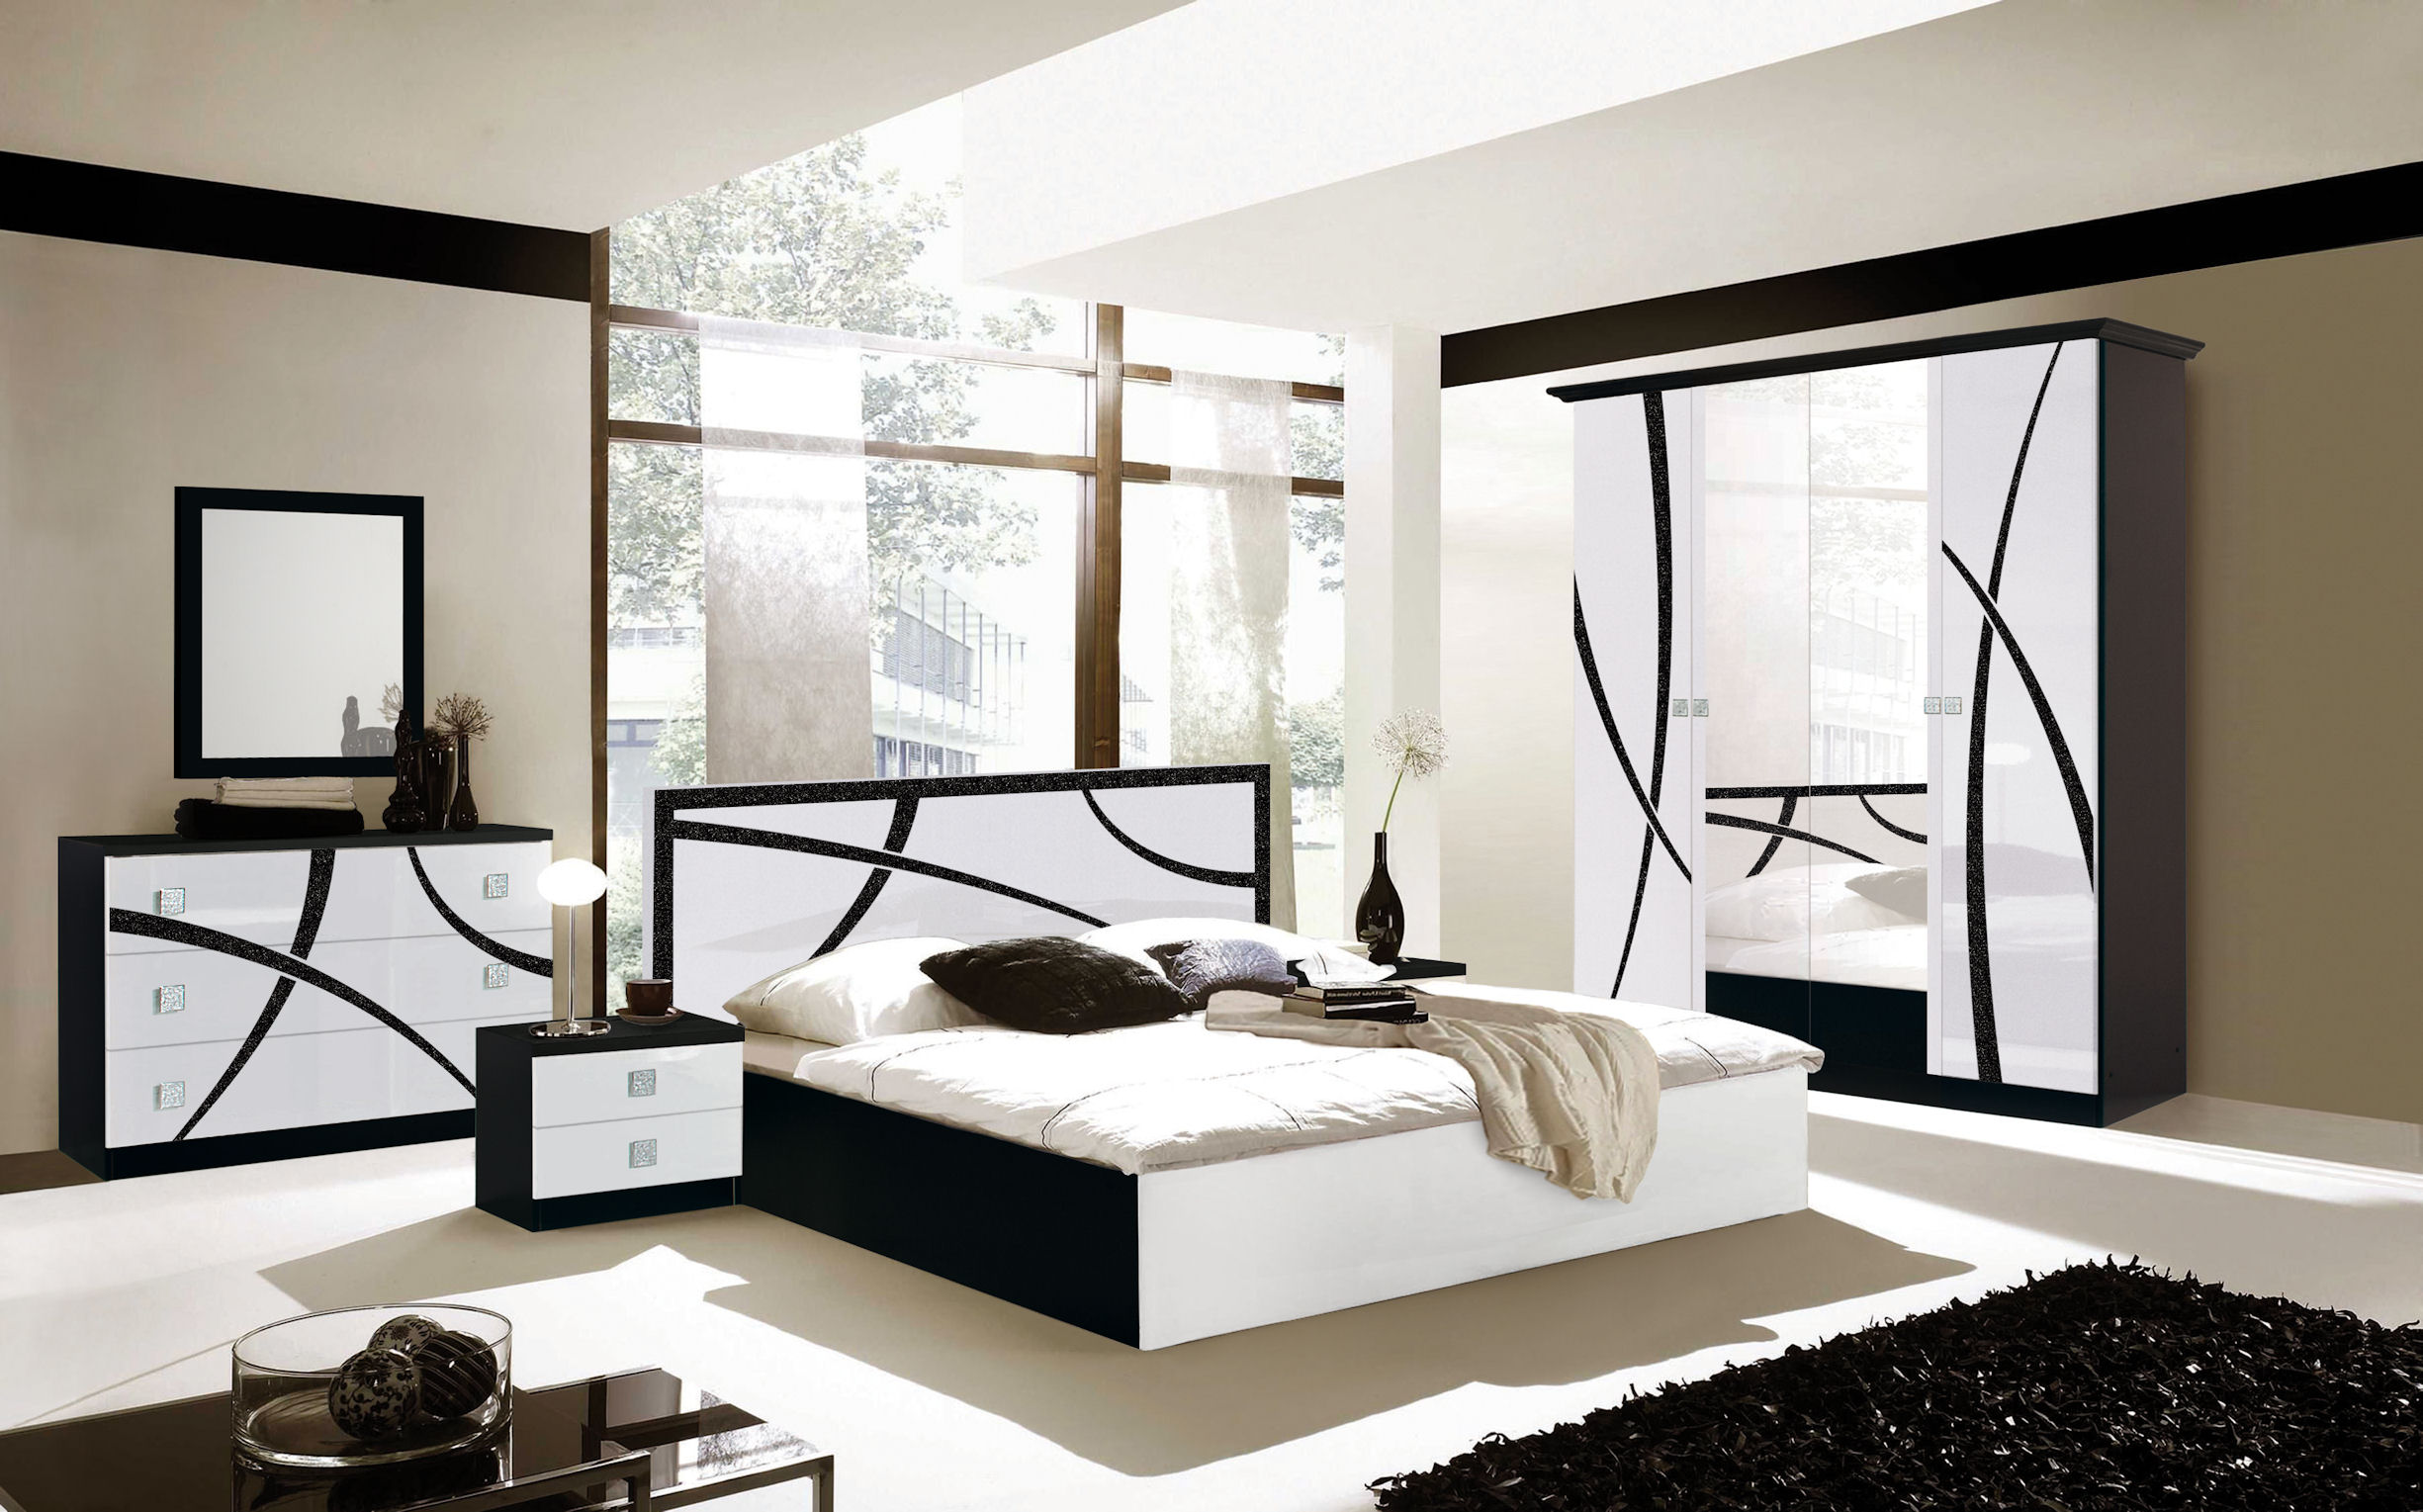 chambre milano nkl meuble wassa et deco. Black Bedroom Furniture Sets. Home Design Ideas